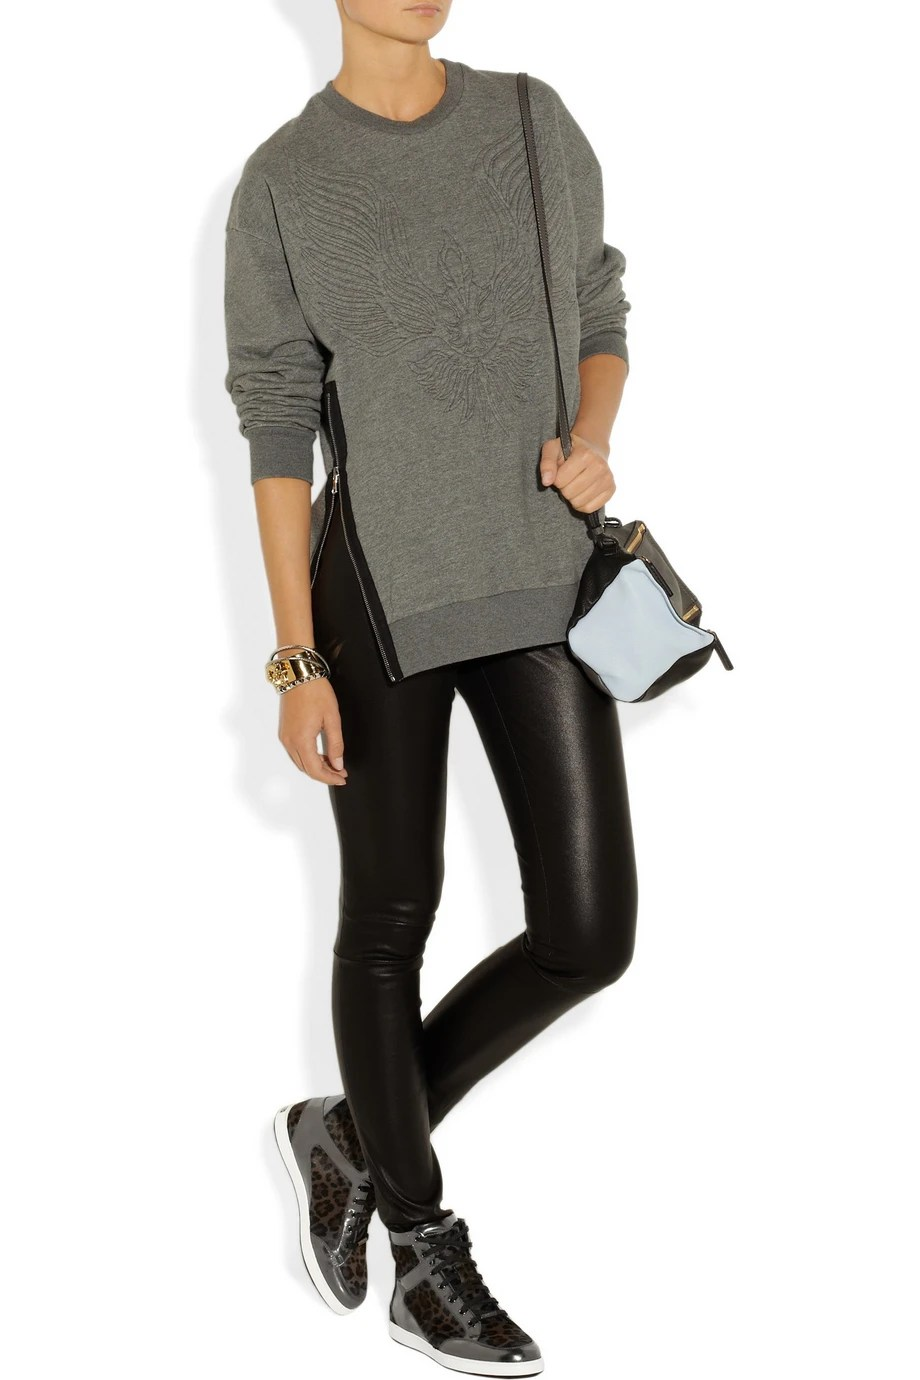 Sweater Legging Jeans and High Top Sneakers